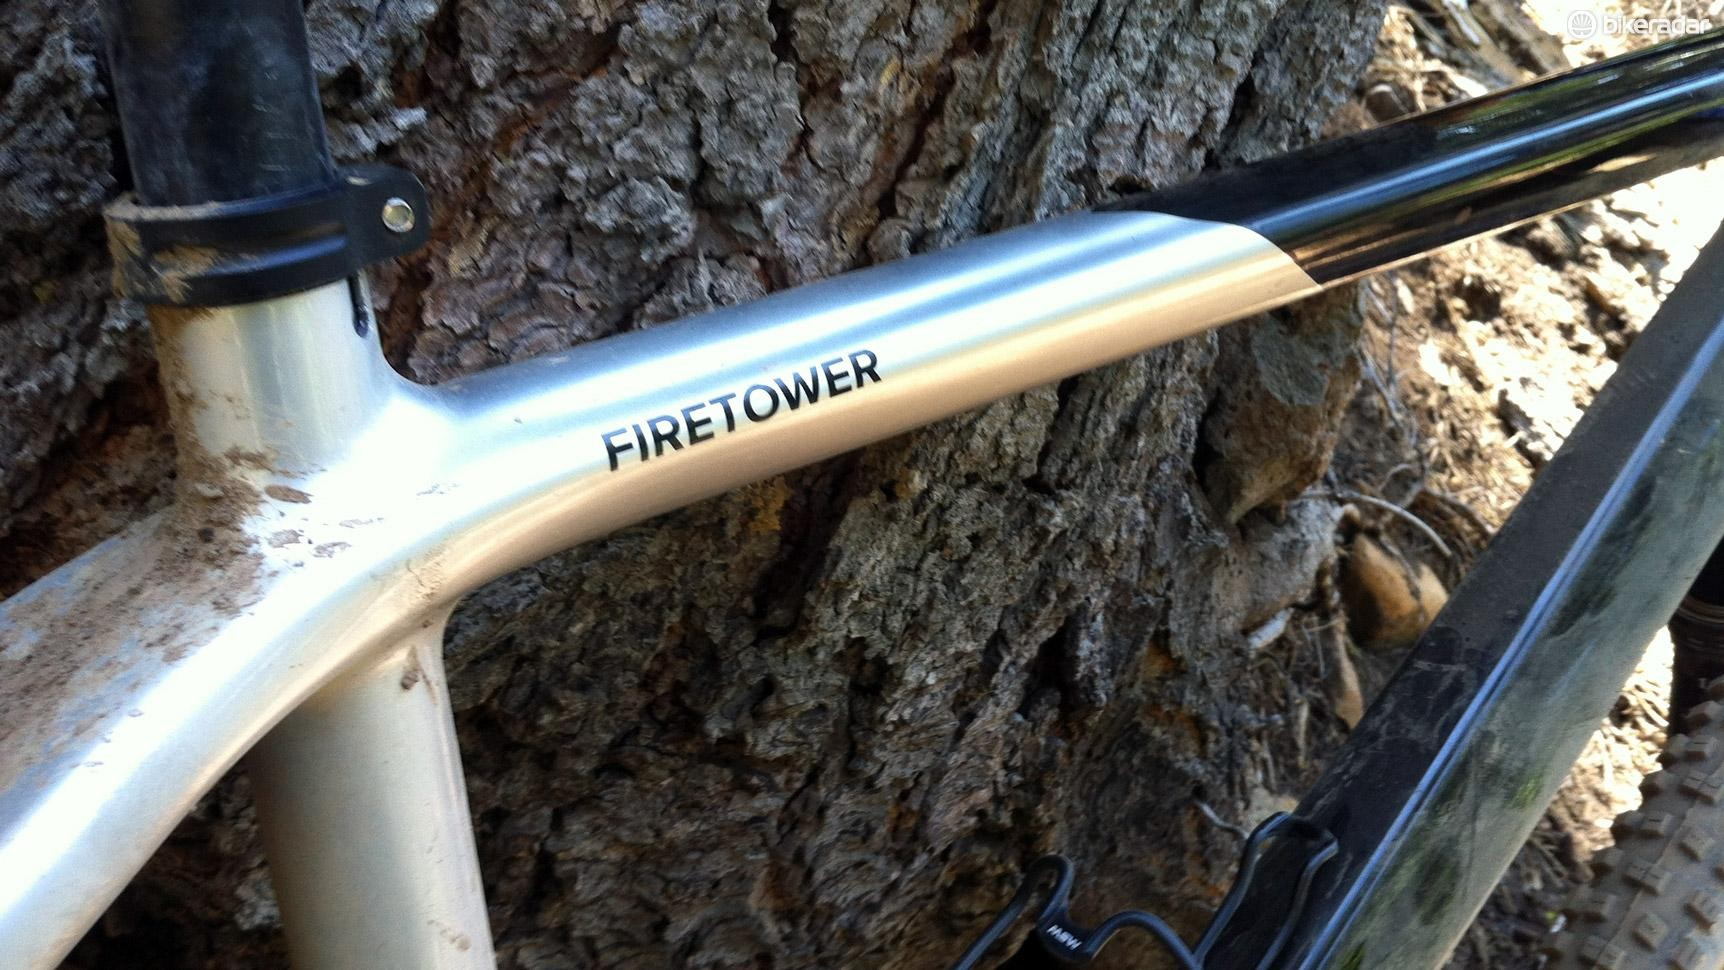 Getting back to the basics, the Firetower is all about cross country riding